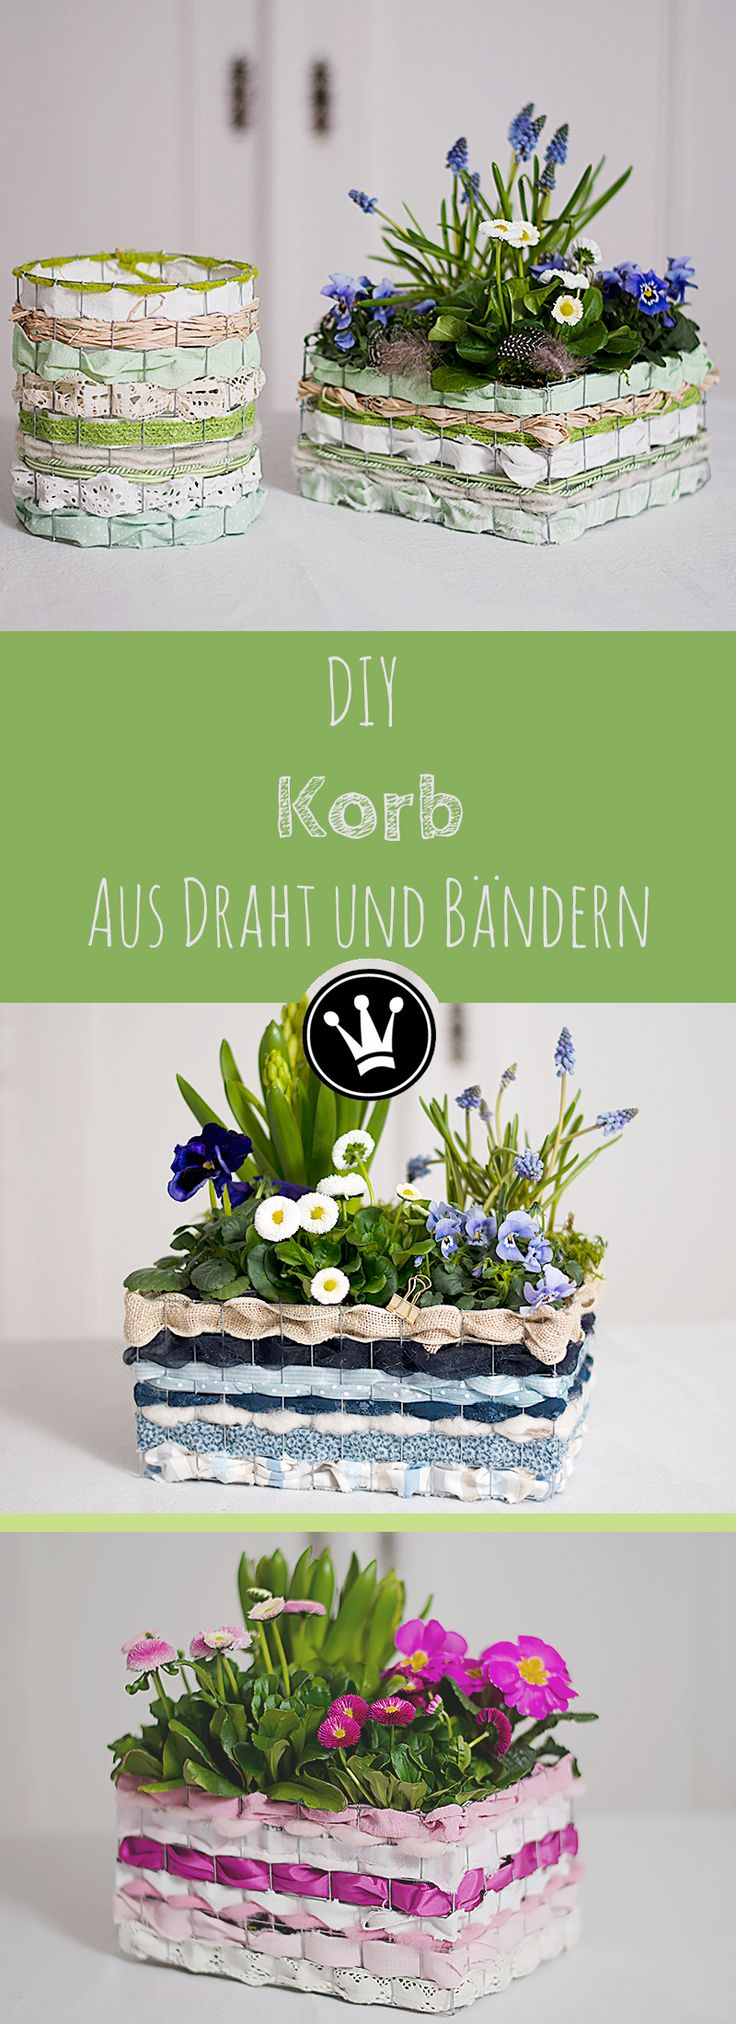 308 best Draht images on Pinterest | Girlanden, Kabelkunst und Bastelei